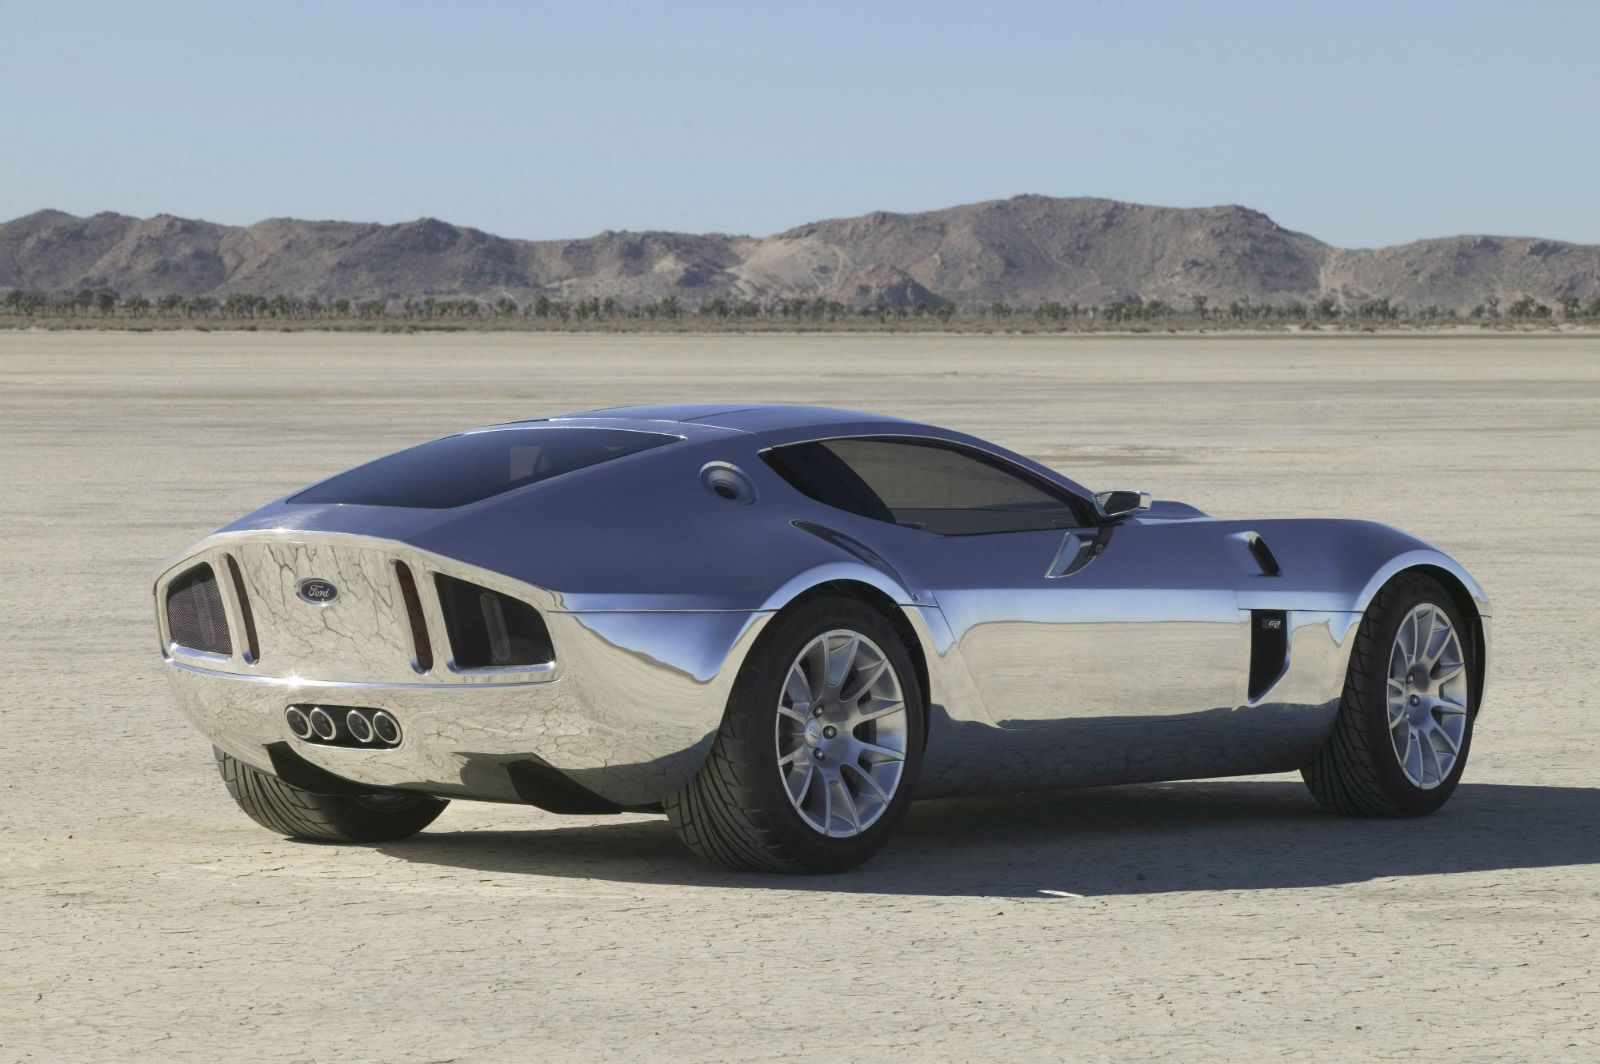 #UsedEngines This concept Shelby GR-1 established itself as one of the most dramatic and contemporary 2-seat, fastback, front-engine supercars.